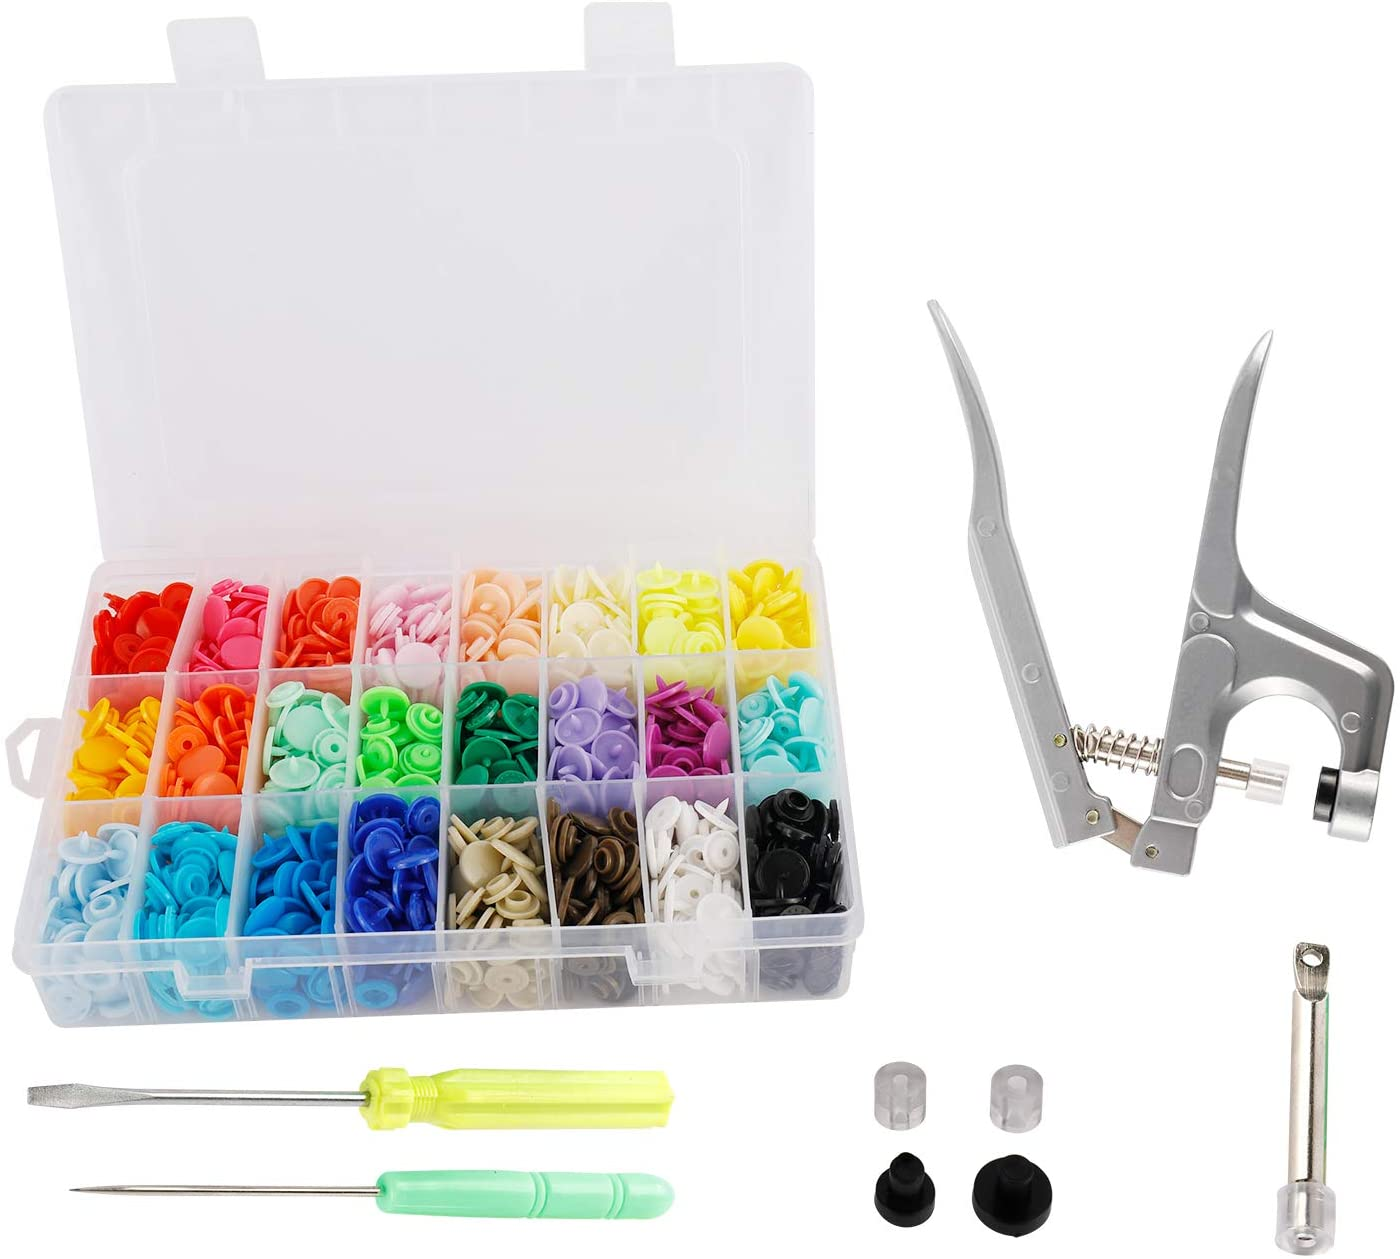 HYDDNice Snap Fastener kit 360PCS T5 Plastic Snap Buttons with Pliers and Organizer Storage Containers for Sewing and Crafting